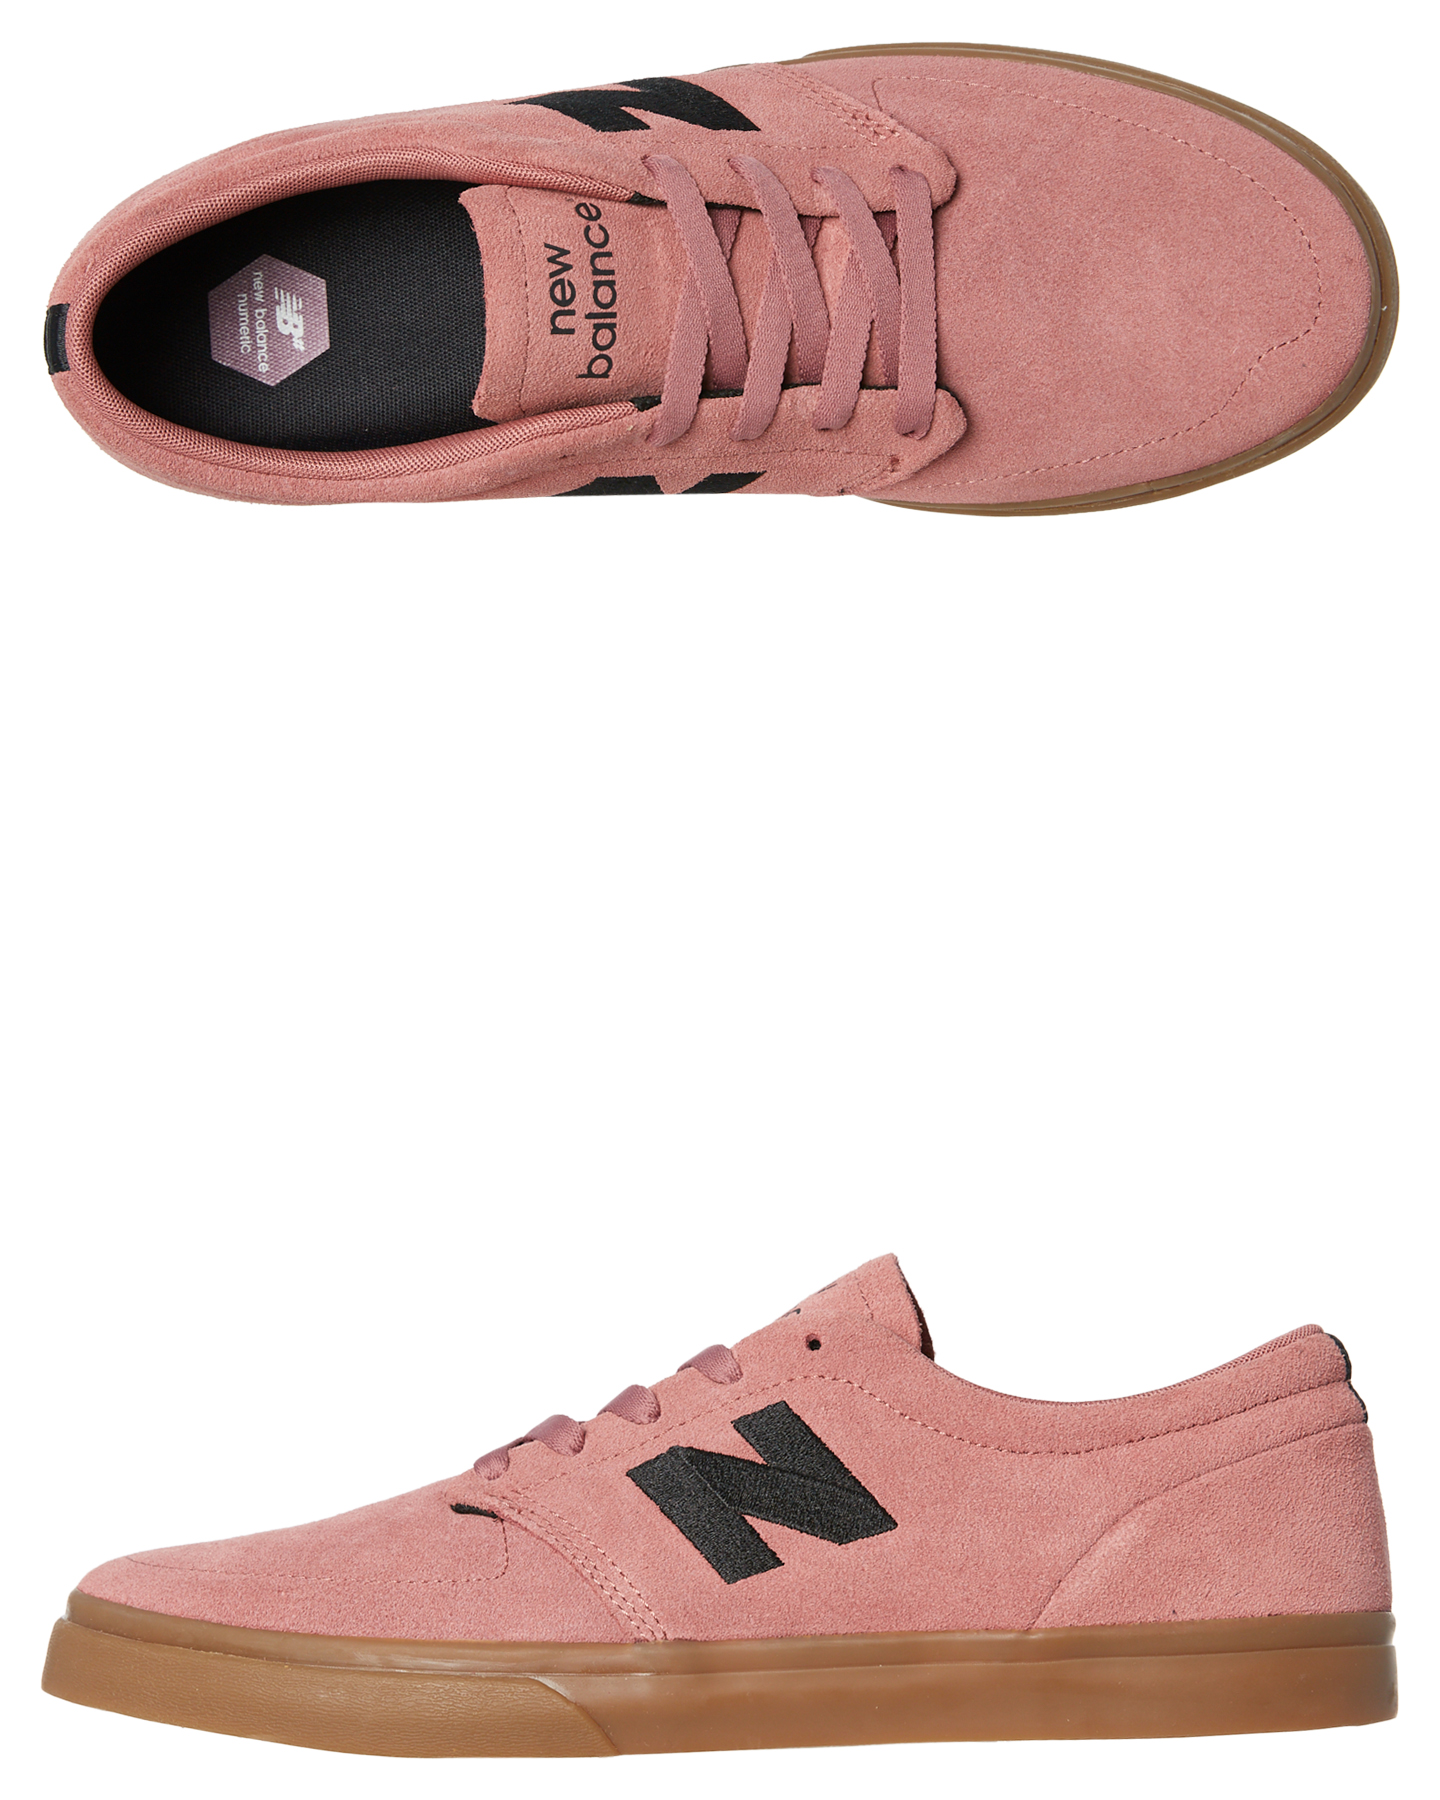 0063065043c43 Details about New New Balance Skate Men's 345 Suede Shoe Rubber Canvas Pink